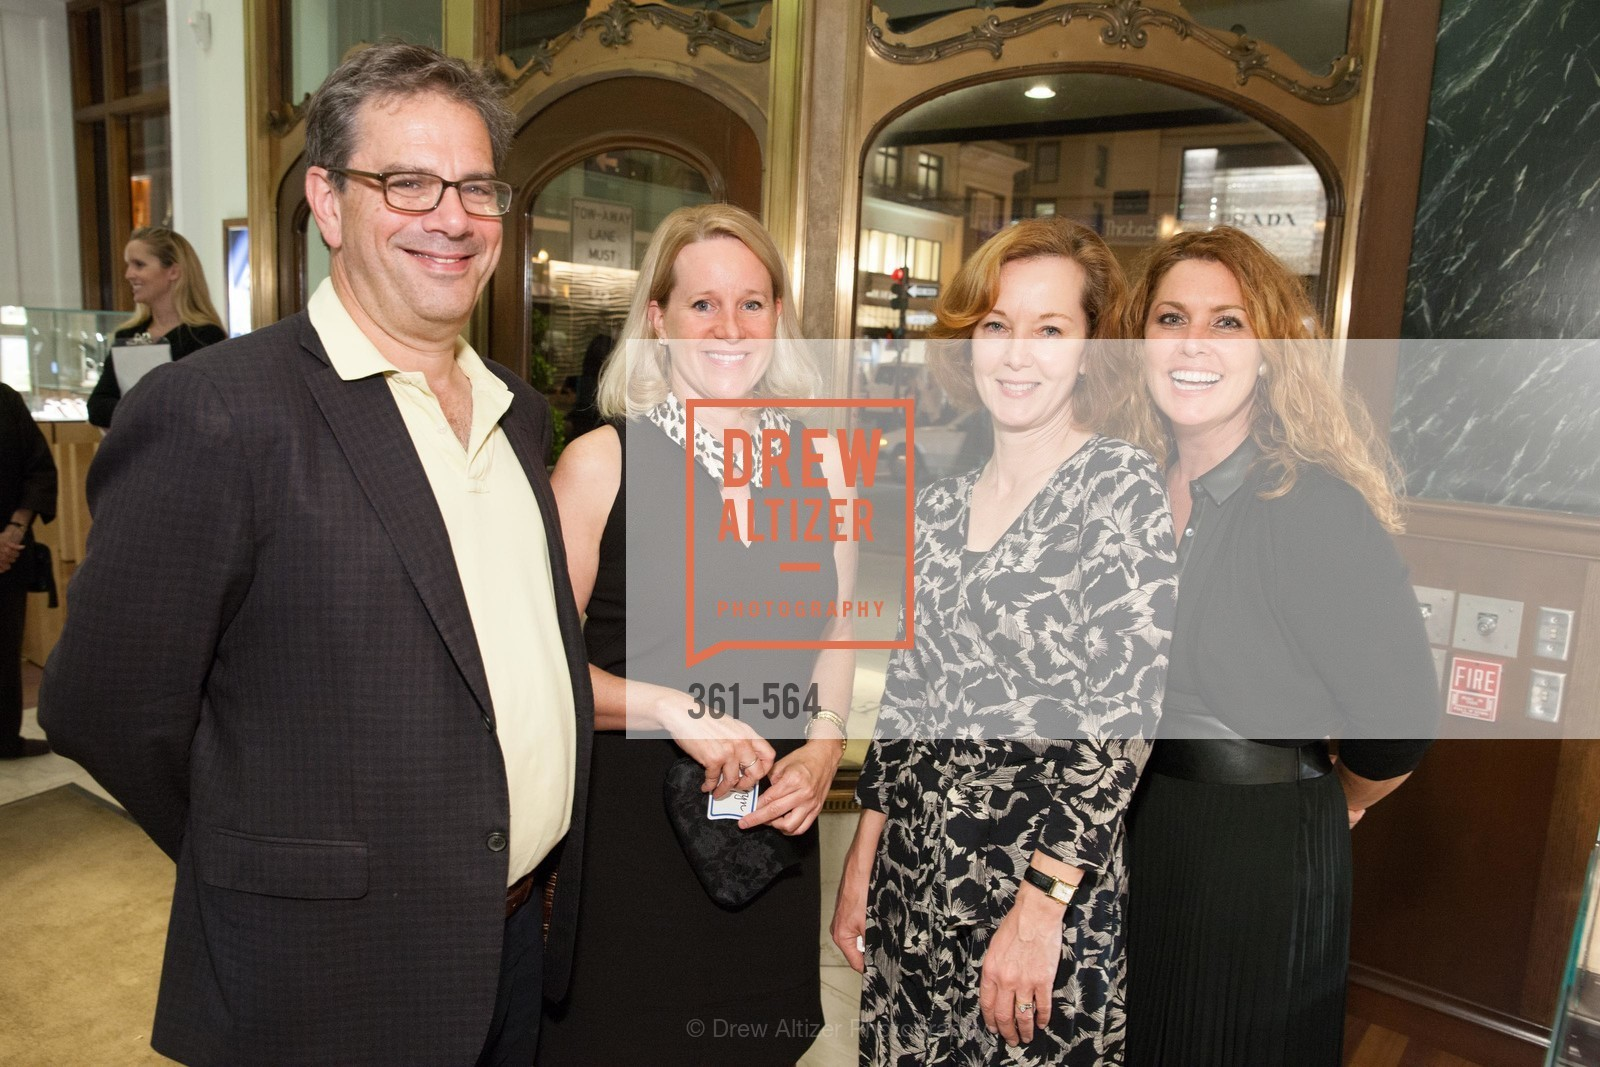 Hank Fuchs, Kathryn Lowell, Katie D'Alessandro, Jill Jepson, SHREVE & CO. Hosts AMERICAN CANCER SOCIETY BENEFIT, US, September 10th, 2014,Drew Altizer, Drew Altizer Photography, full-service event agency, private events, San Francisco photographer, photographer California